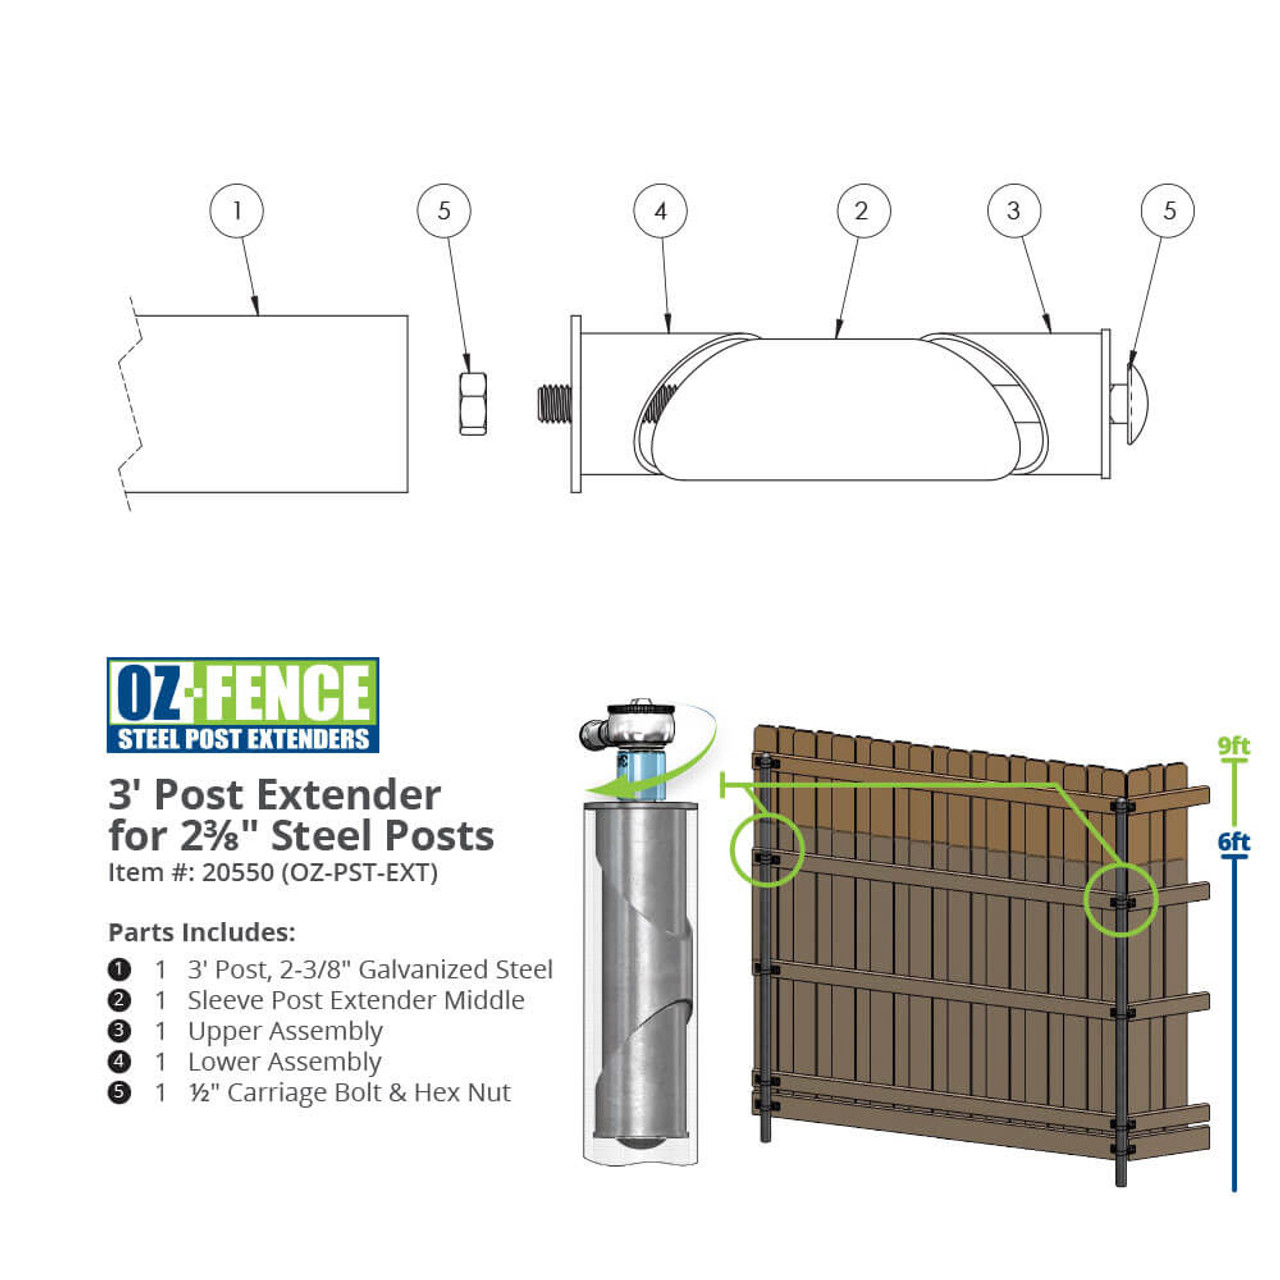 OZCO Building Products OZ-Fence Post Extender Dimension Drawing